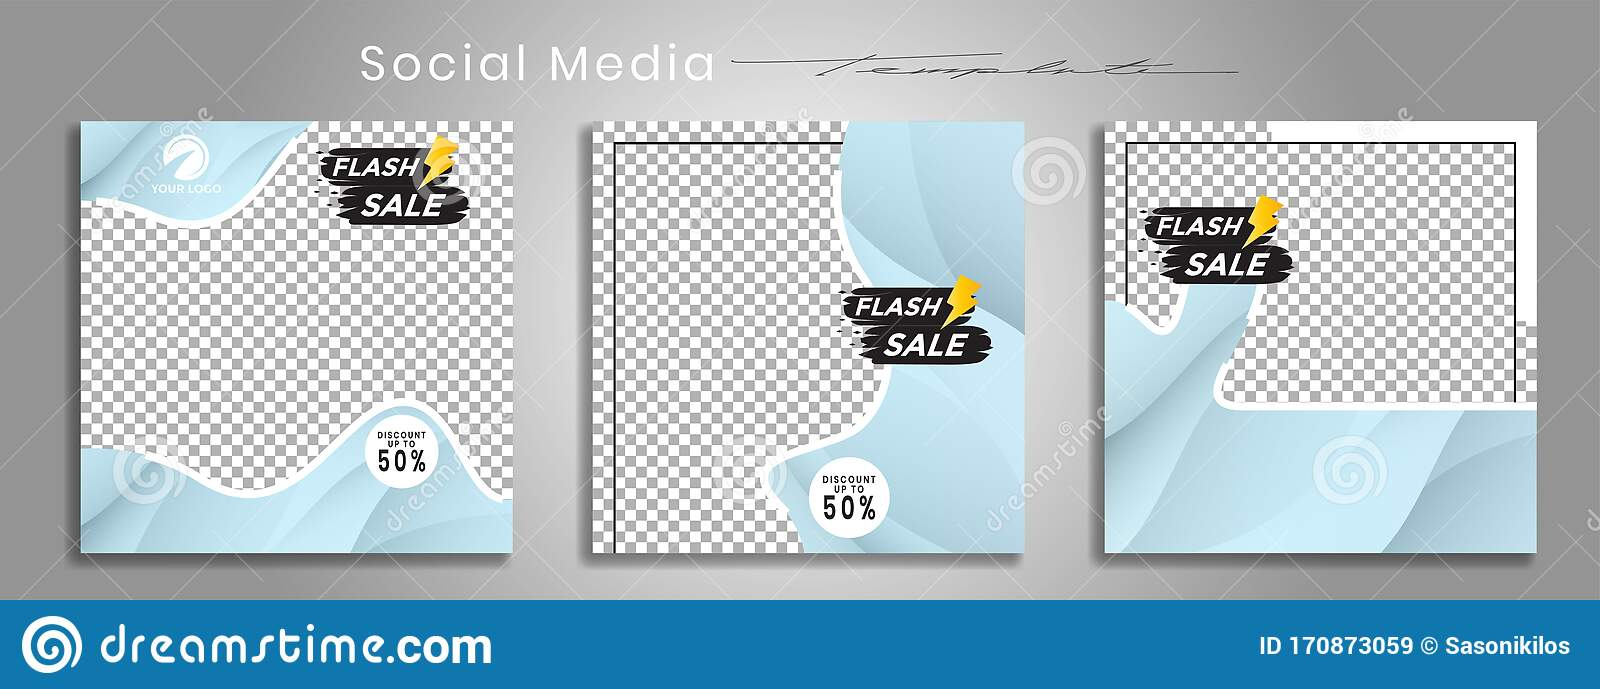 Editable Social Media Templates Instagram Story Collections And Post Frame Templates Layout Designs Mockups For Marketing Stock Vector Illustration Of Memphis Post 170873059